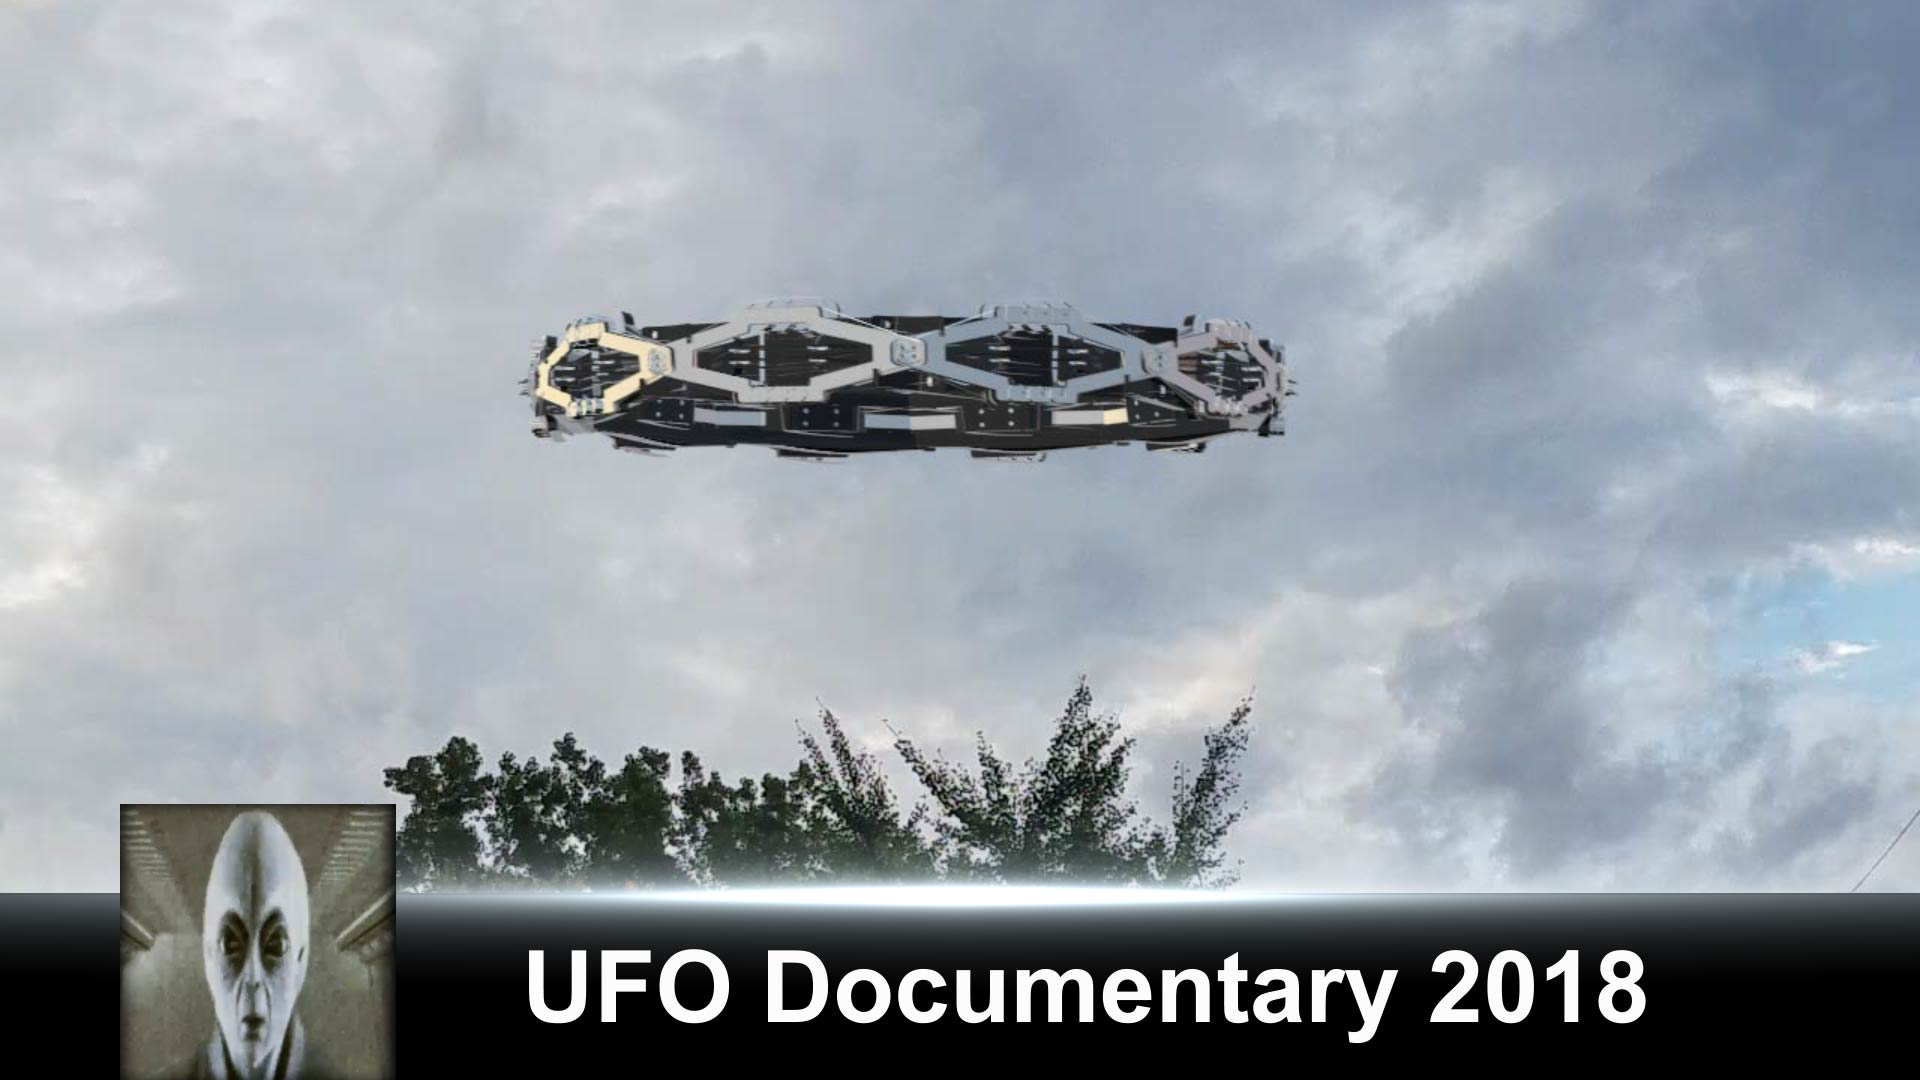 UFO Sightings Documentary 2018